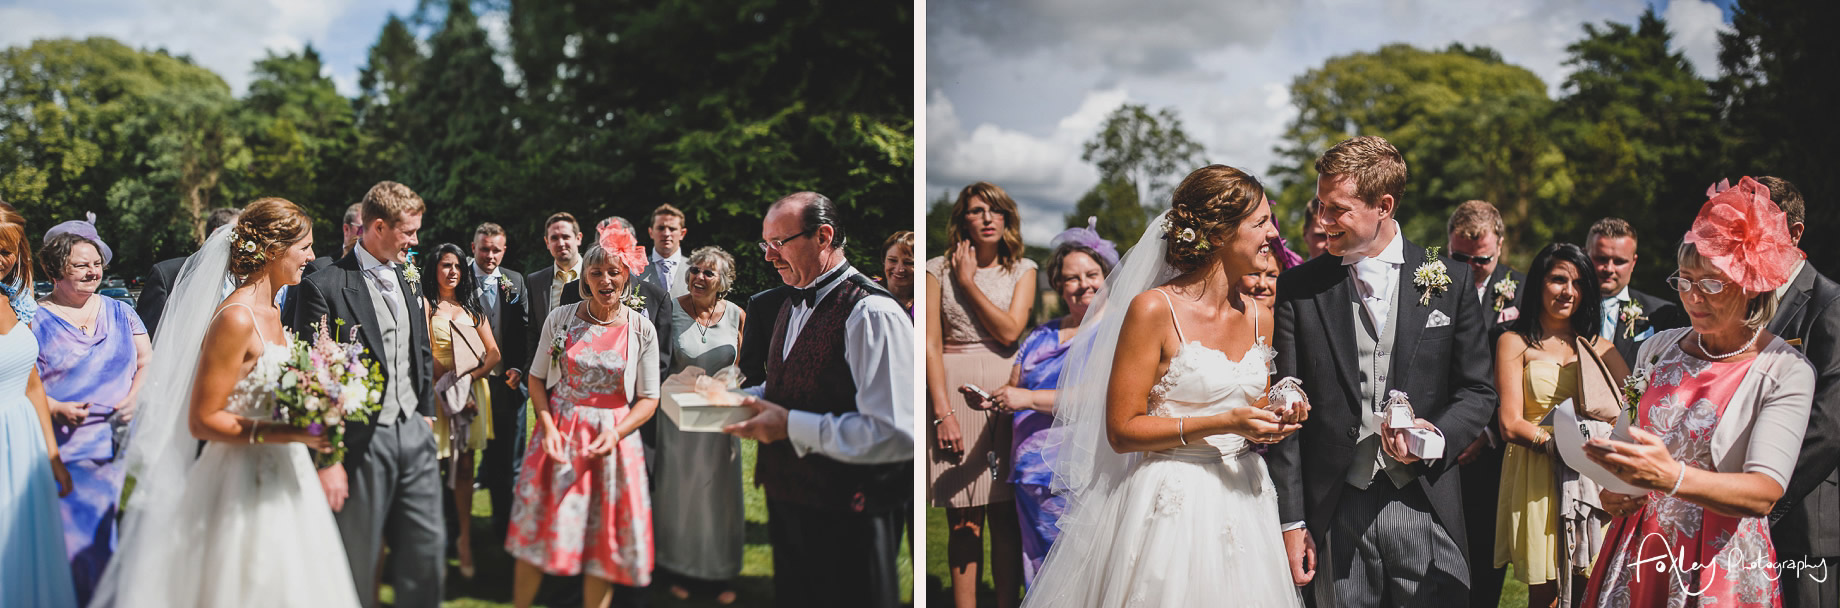 Claire and James' Wedding at Mitton Hall 110